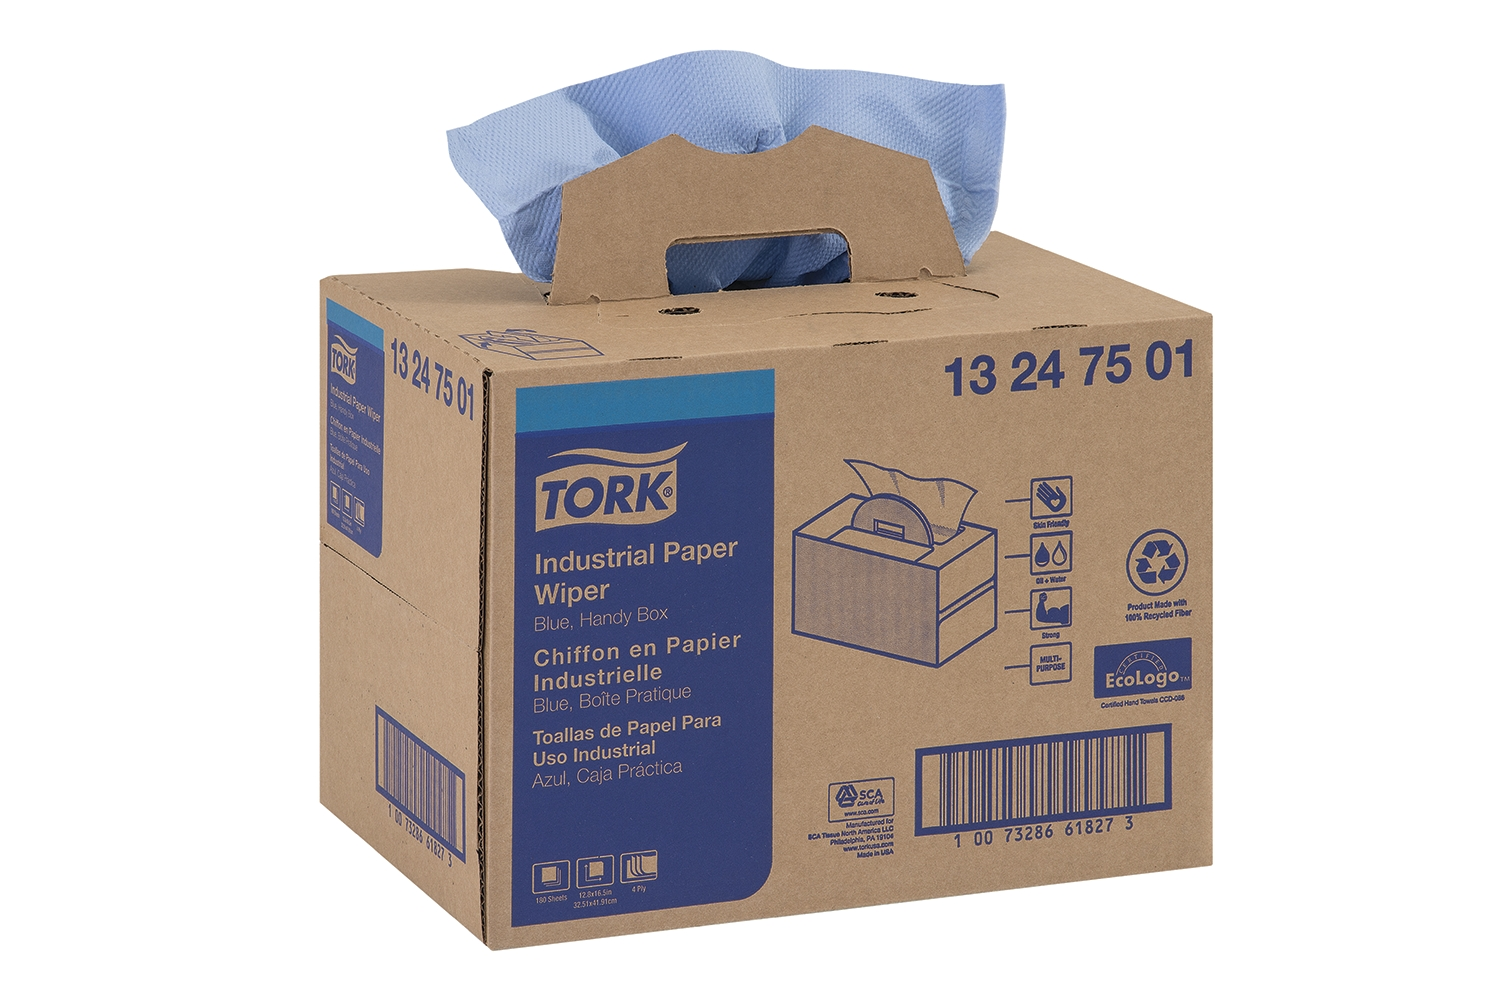 13247501 TORK MP WIPER BLU 180